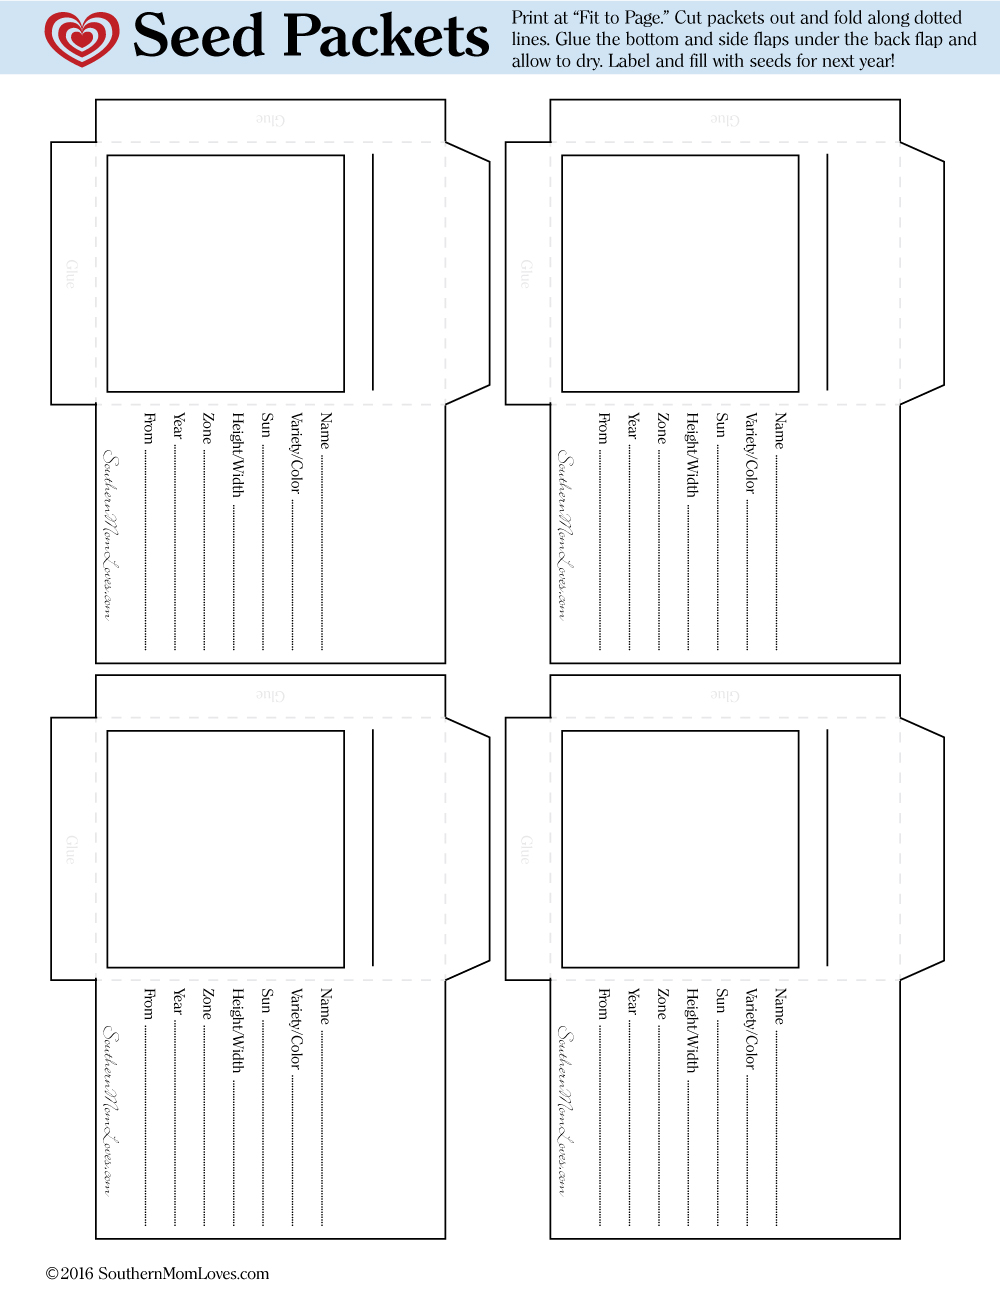 southern mom loves garden heirloom seed packet free printable. Black Bedroom Furniture Sets. Home Design Ideas